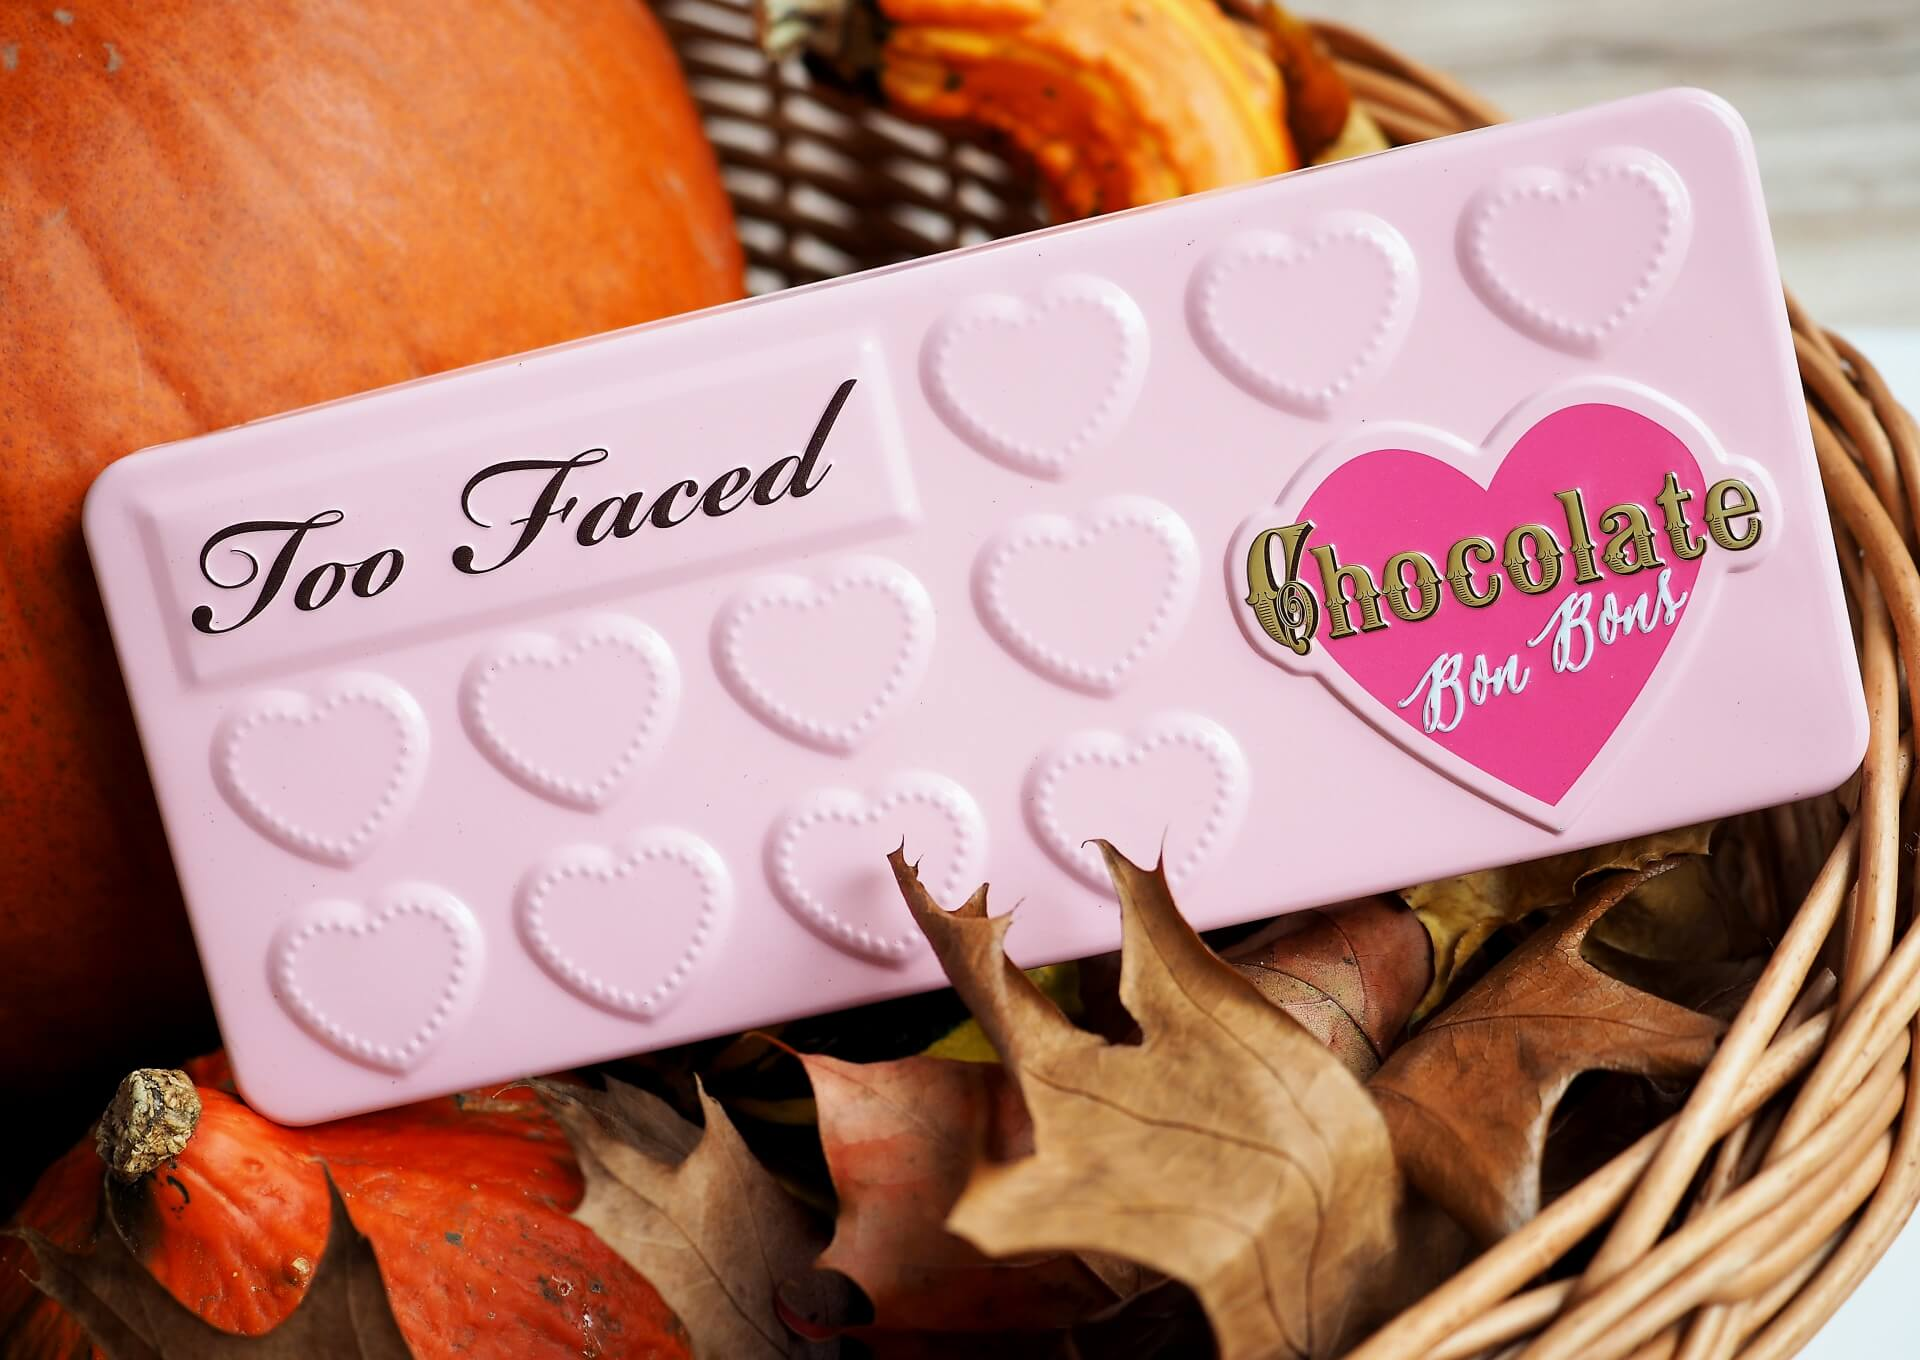 Too Faced Chocolate Bon Bones